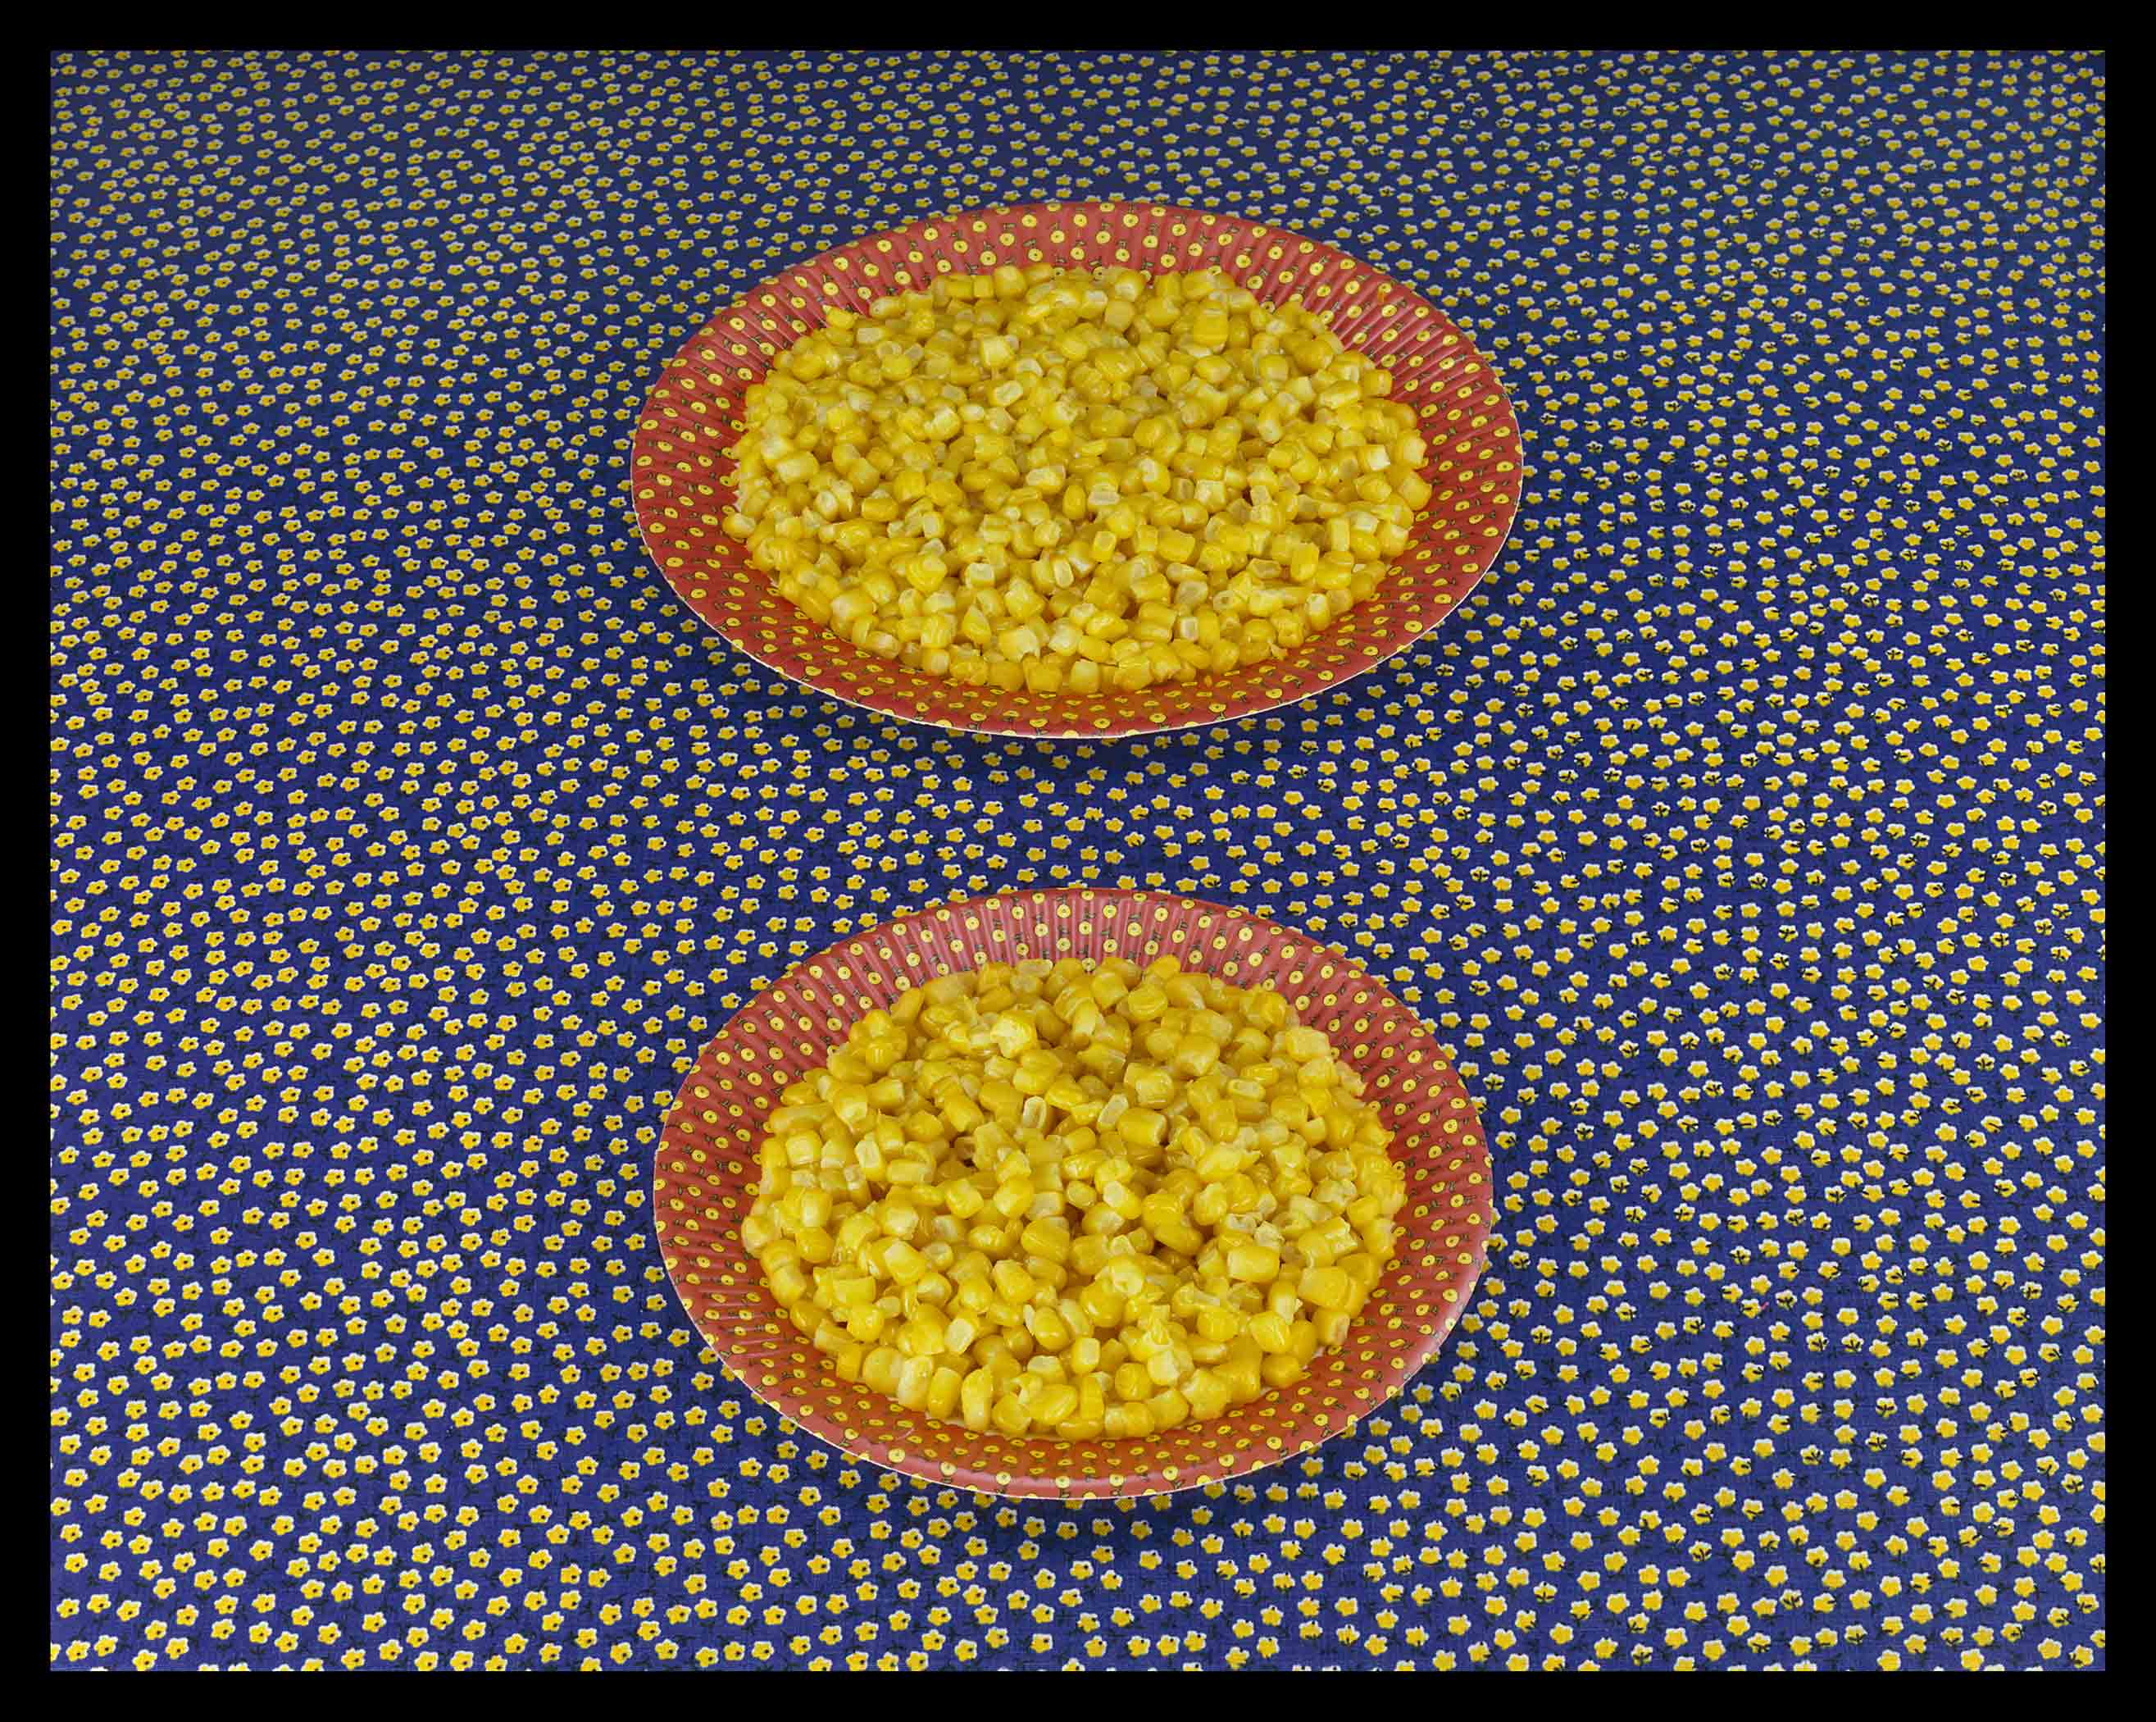 TWO PLATES OF CORN